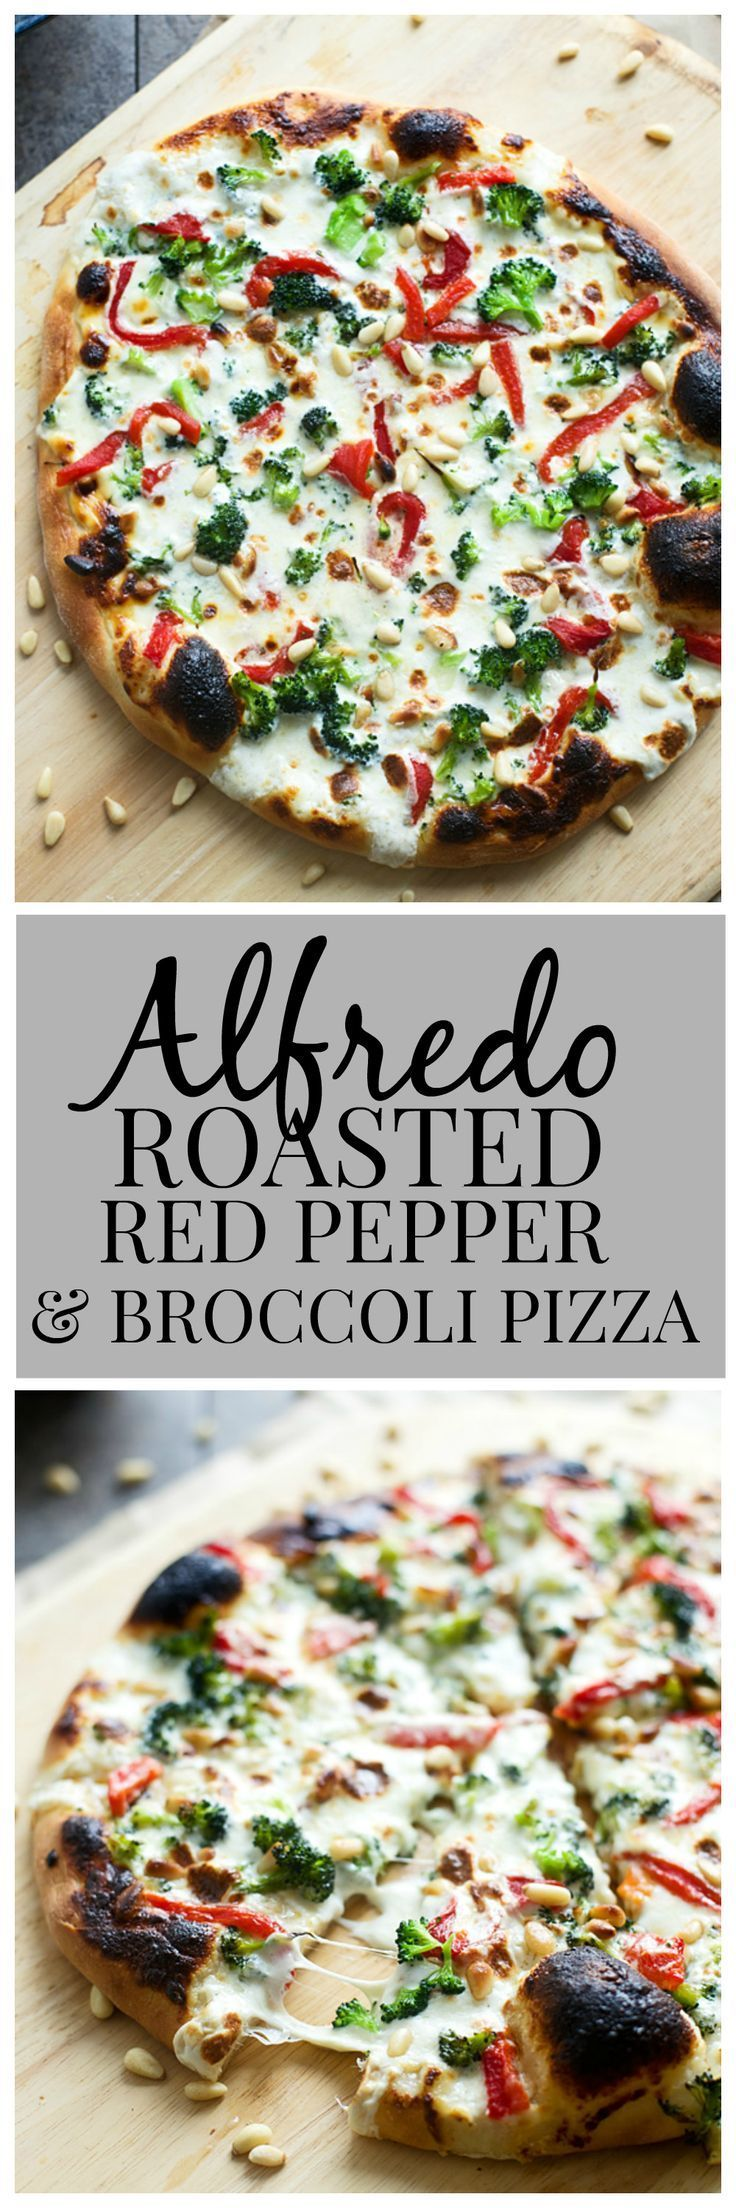 Alfredo, Roasted Red Pepper and Broccoli Pizza - Plus fool-proof tips on how to make restaurant-quality pizza at home.